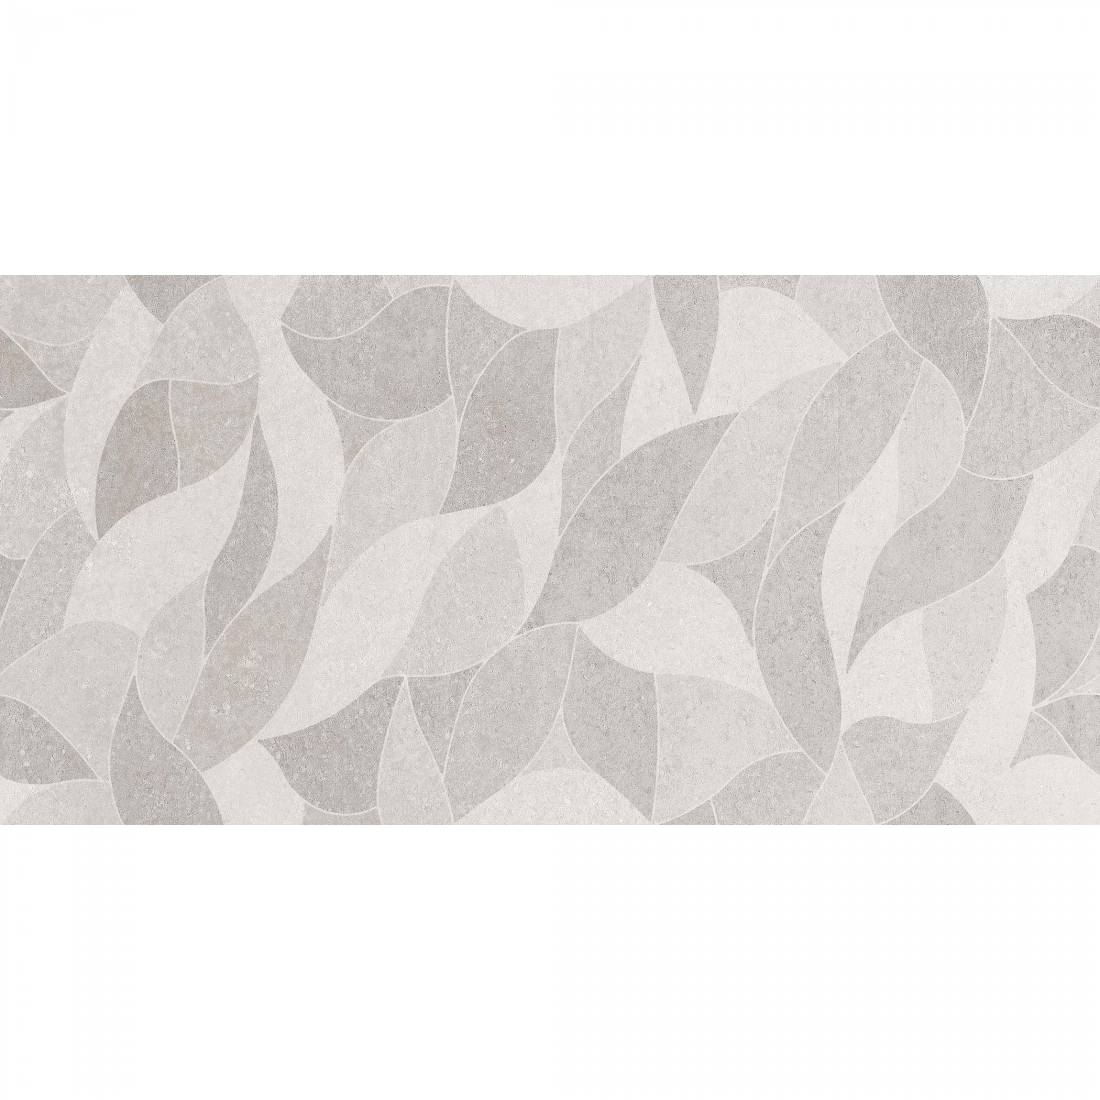 Autumn Decor 30x60 Grey Matt 1